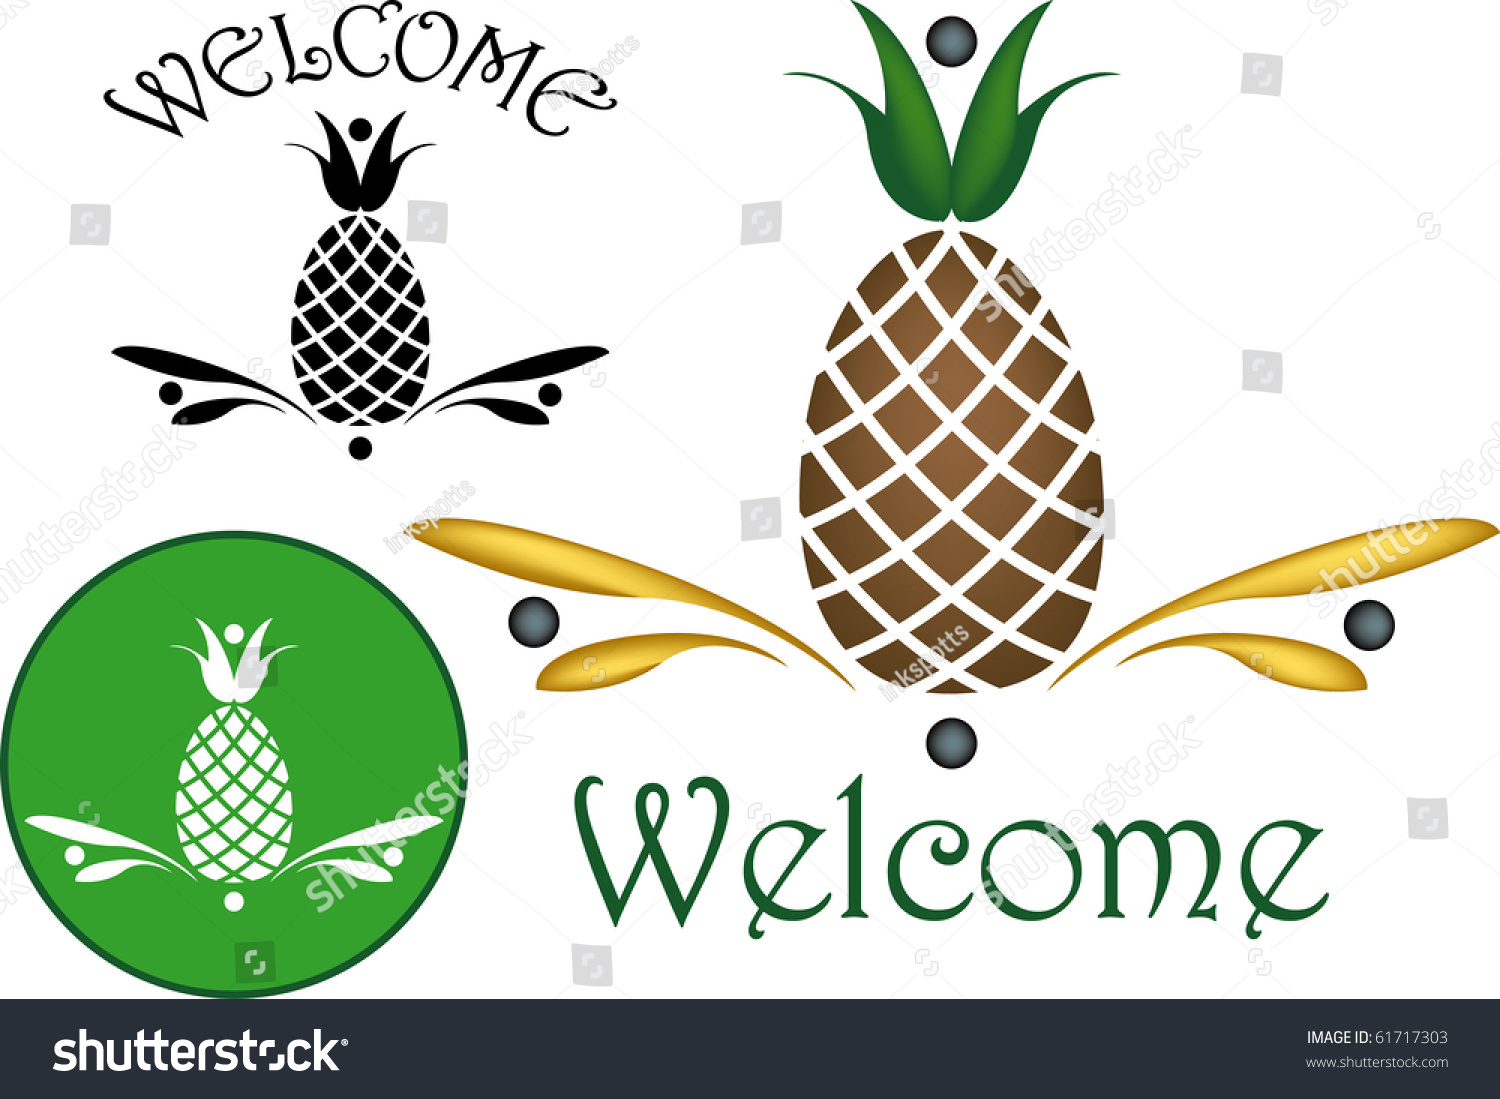 Pineapple Widely Recognized Symbol Hospitality Stock Illustration